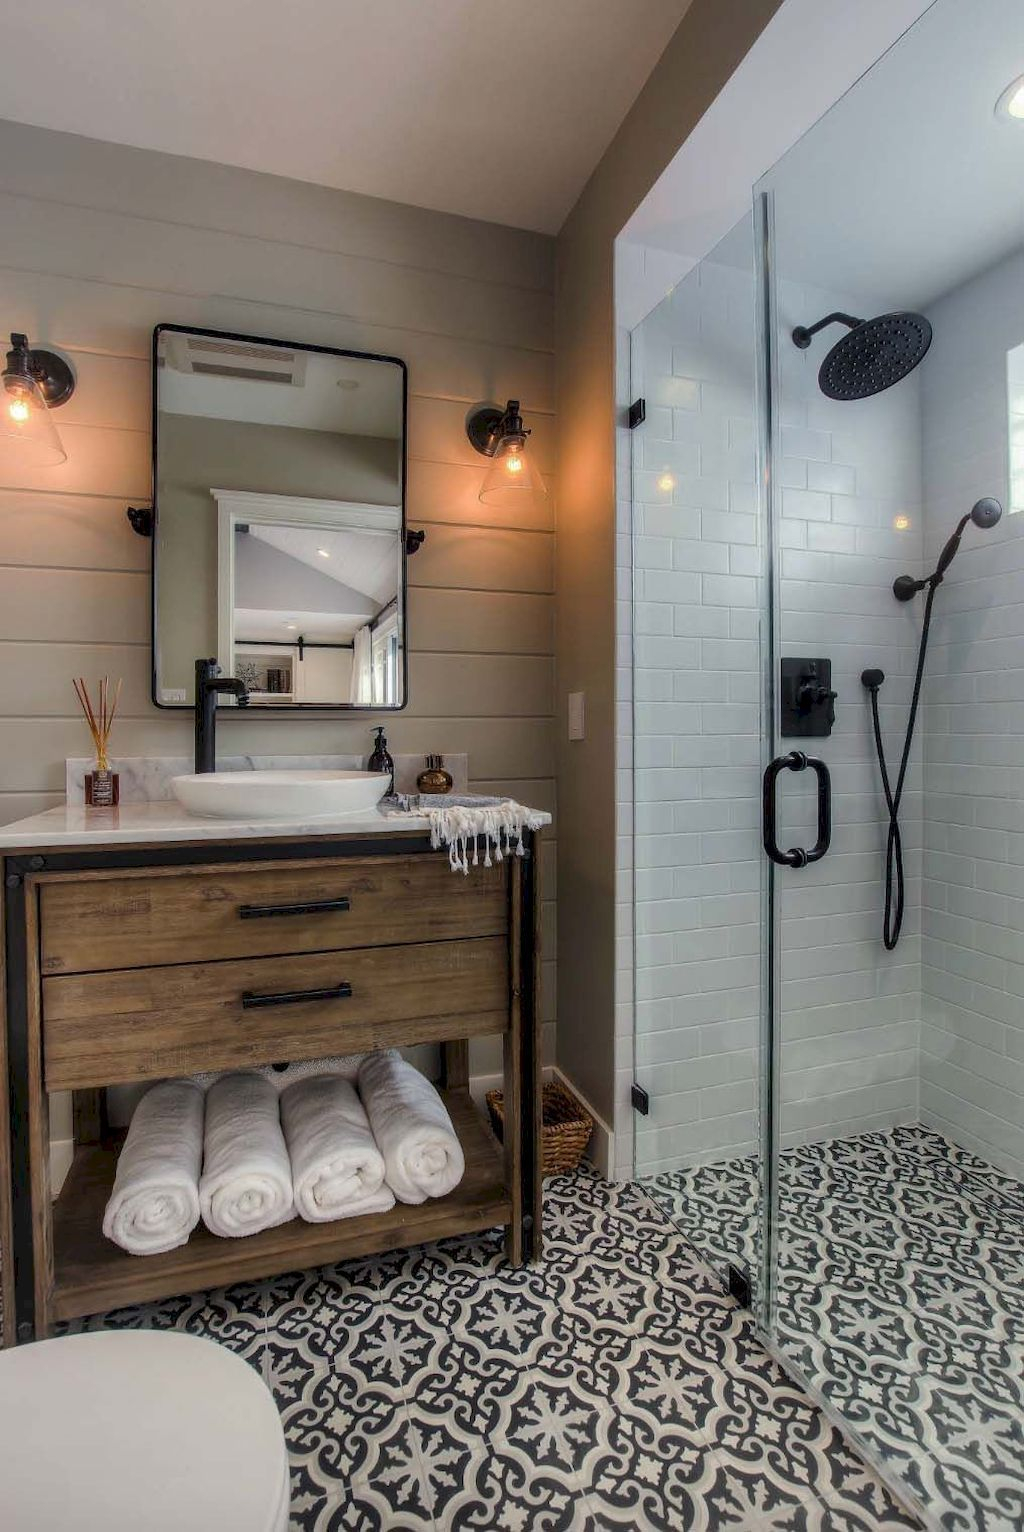 20 Relaxing Rustic Style Bathroom Ideas Detectview – layjao